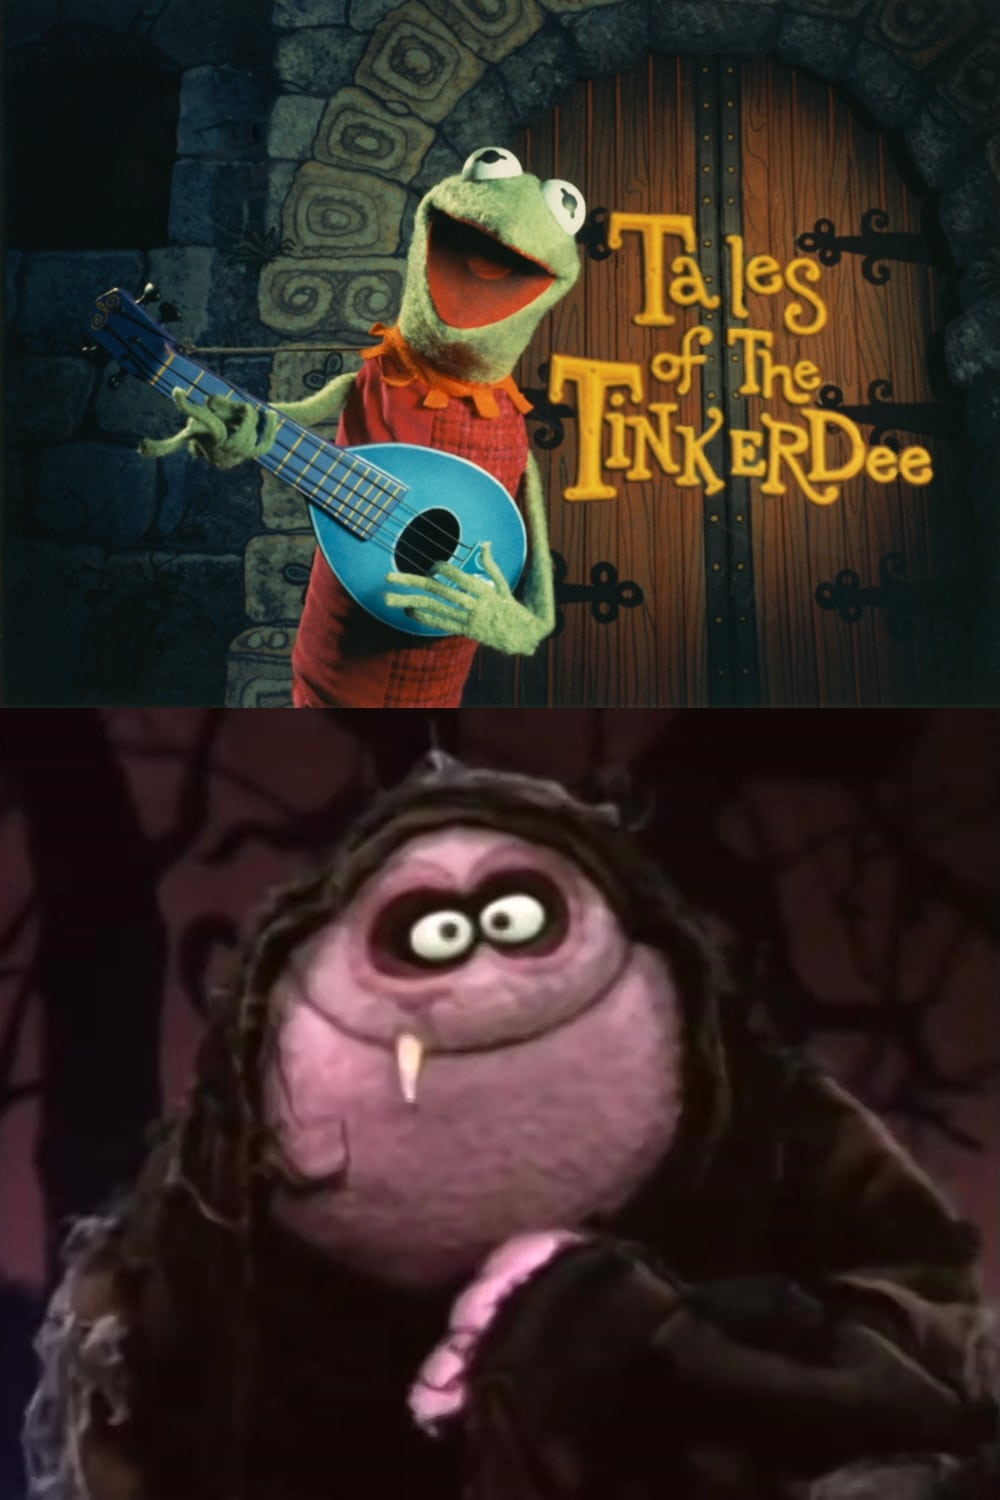 Tales of the Tinkerdee (1962)